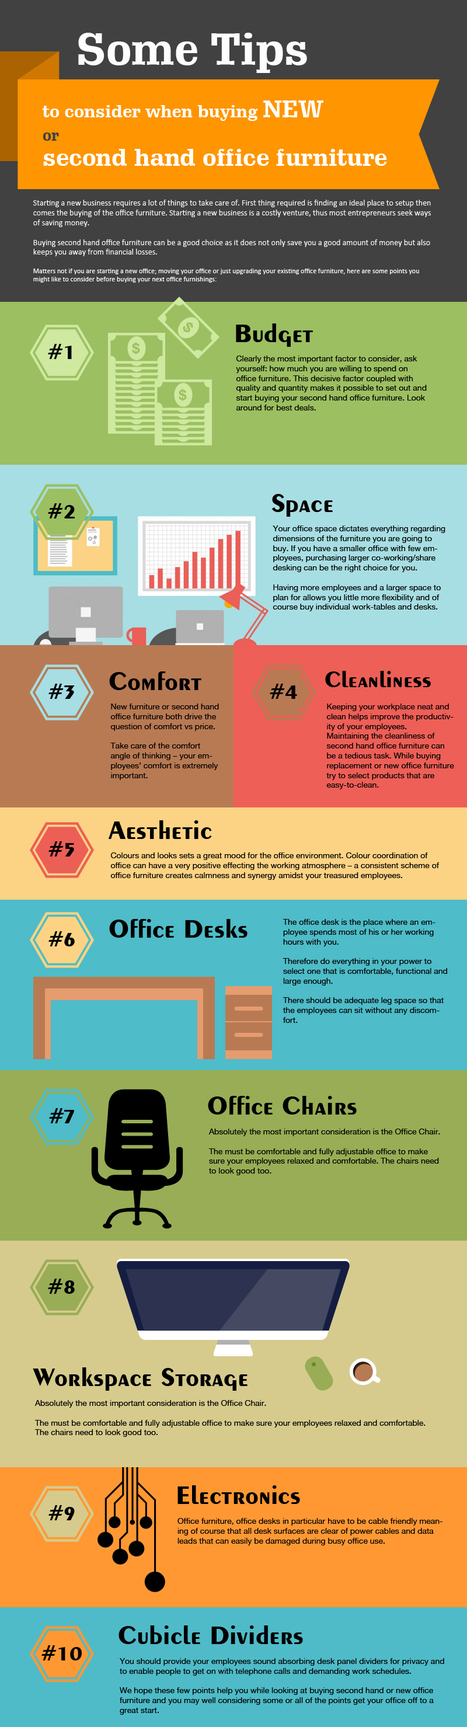 New and Used Office Furniture for Your Workplac | Office Furniture UK | Scoop.it